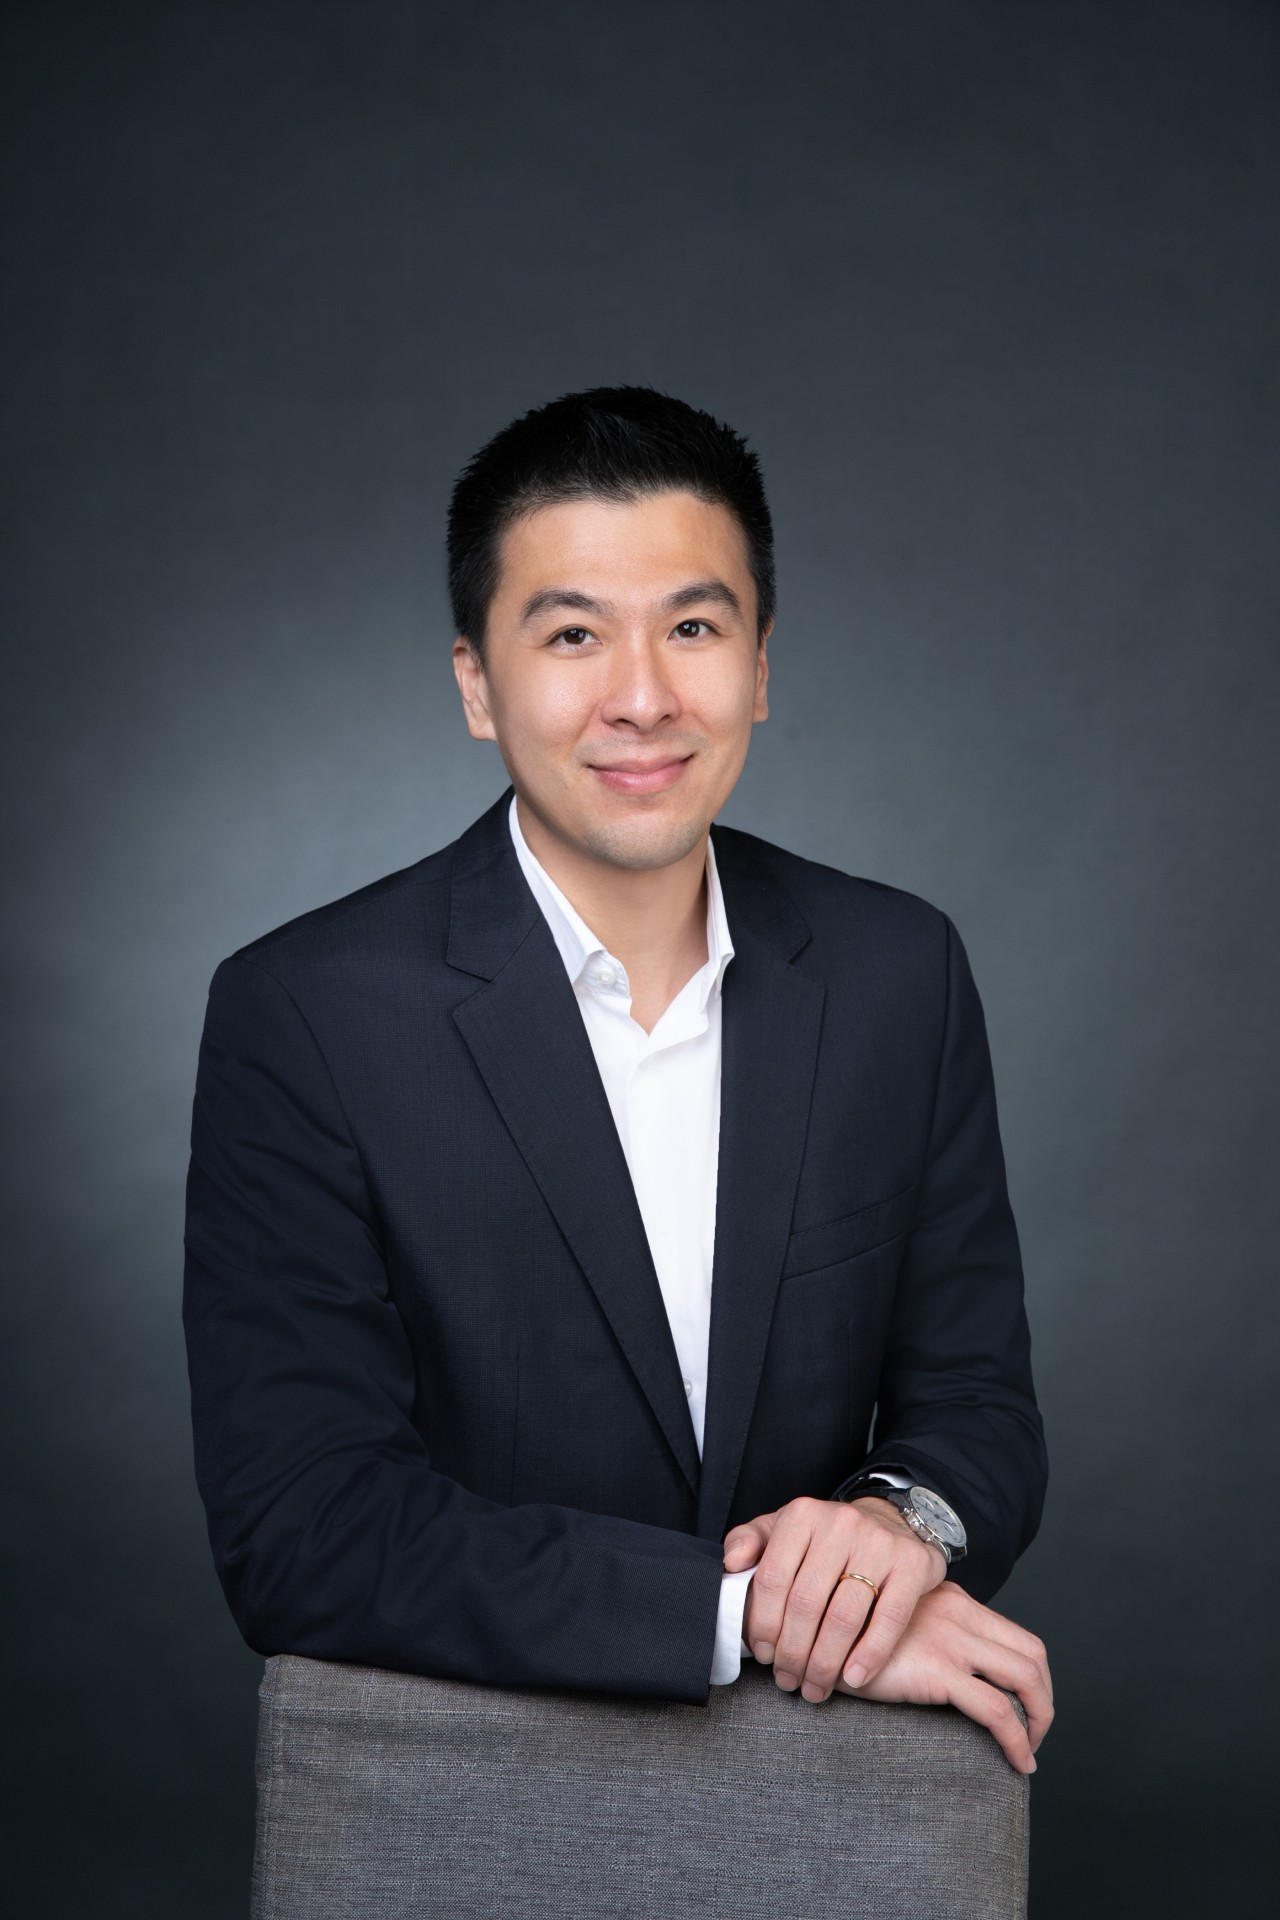 JS Gan is Co-founder and Managing Director at Building Solutions Ltd